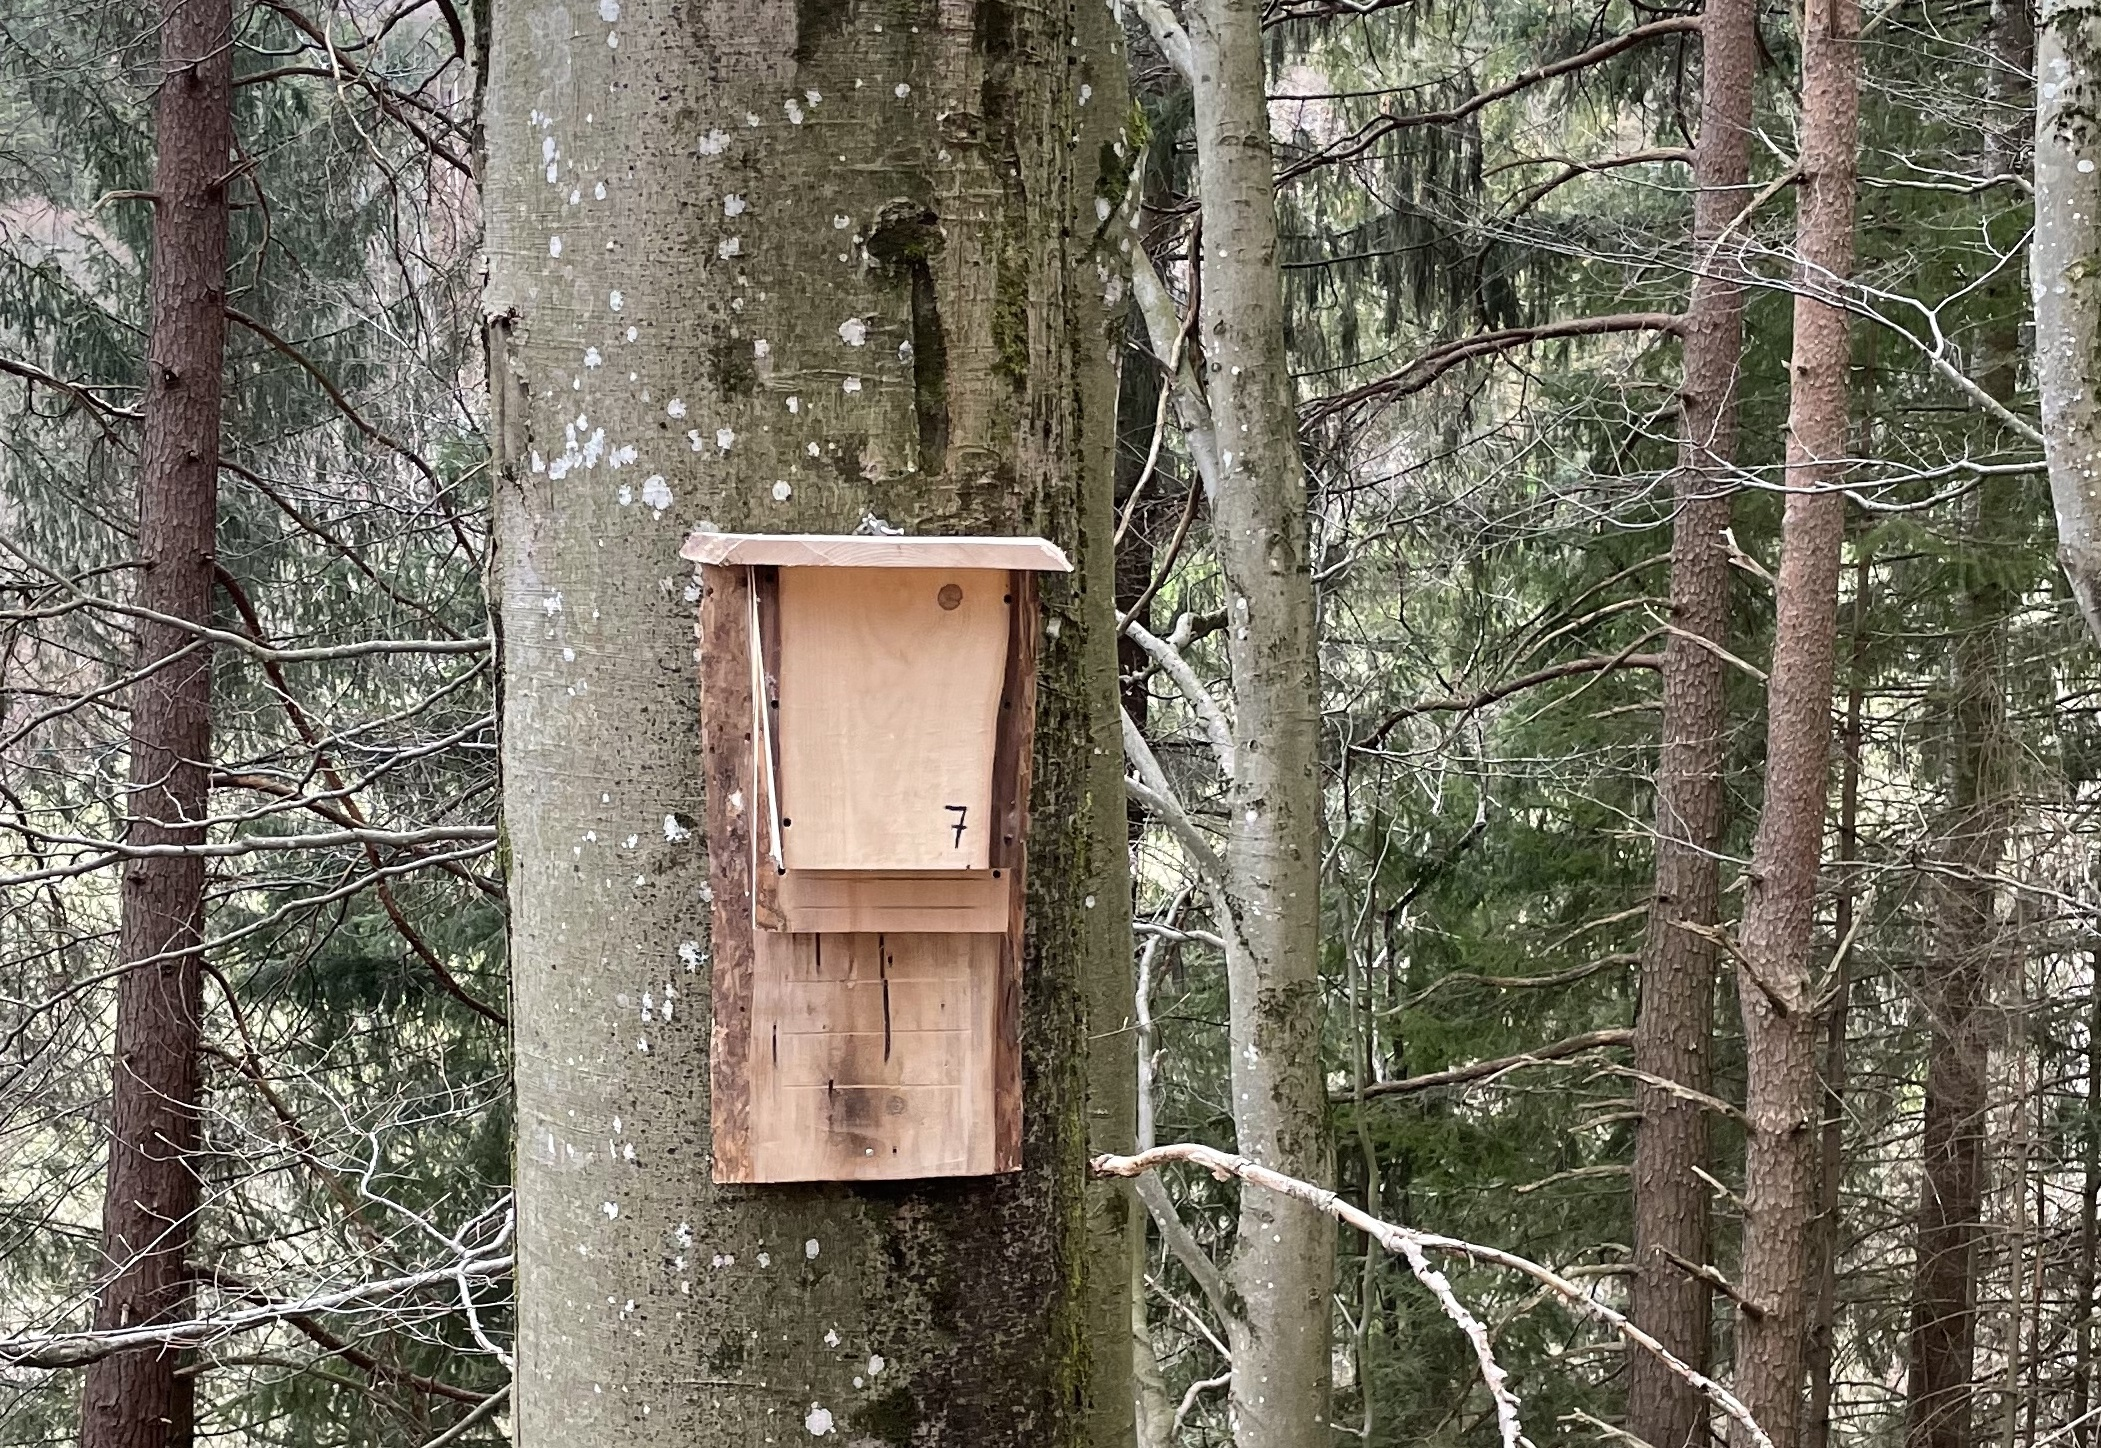 Bed and breakfast for bats